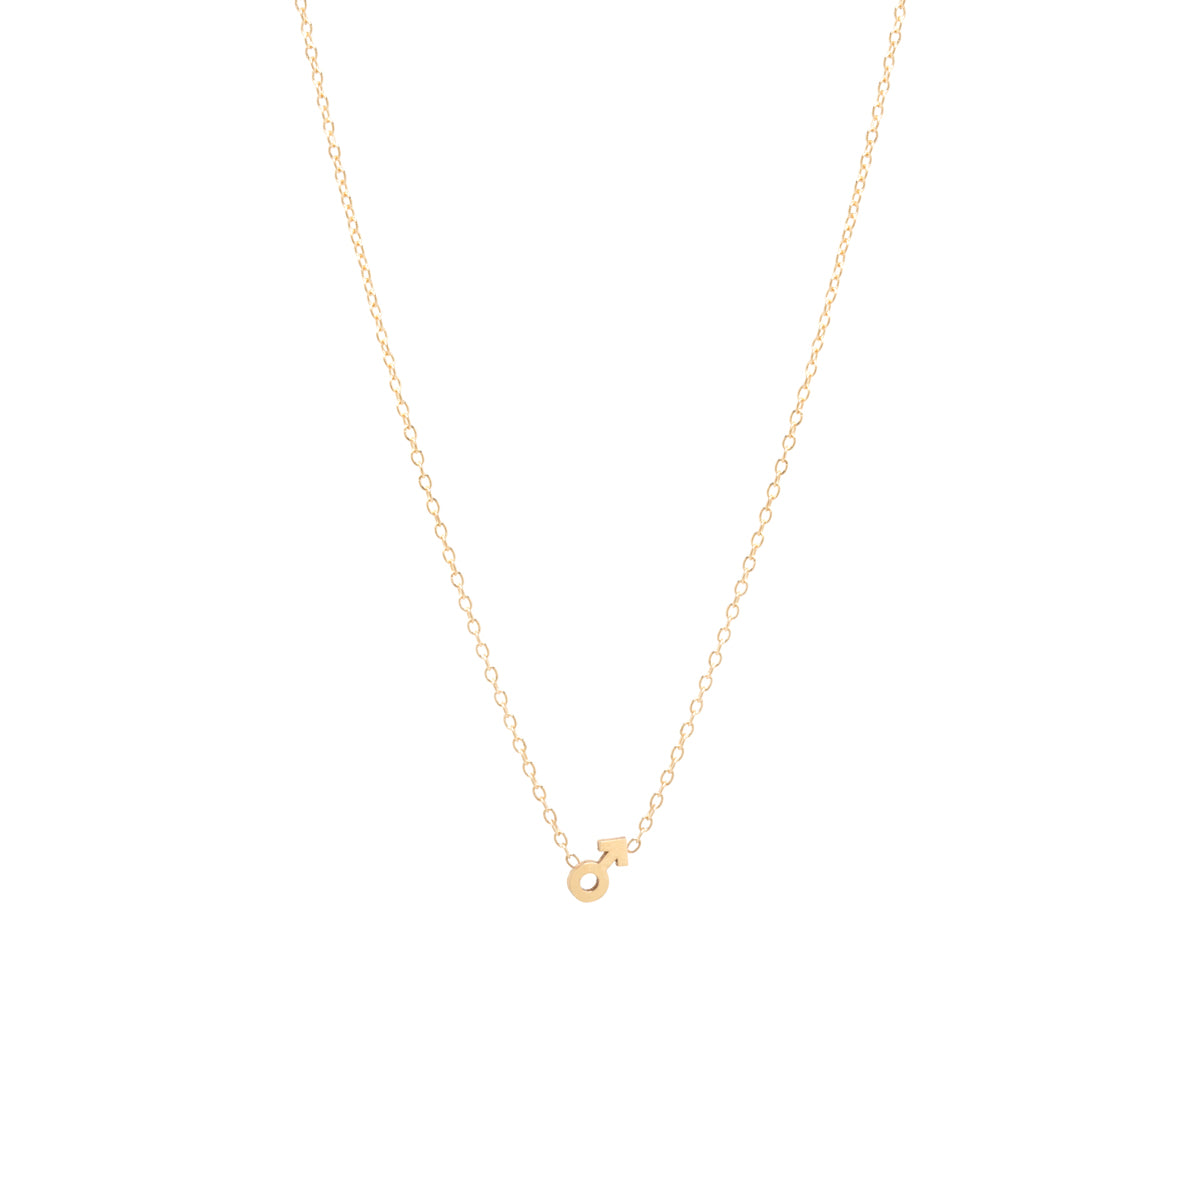 14k itty bitty male symbol necklace